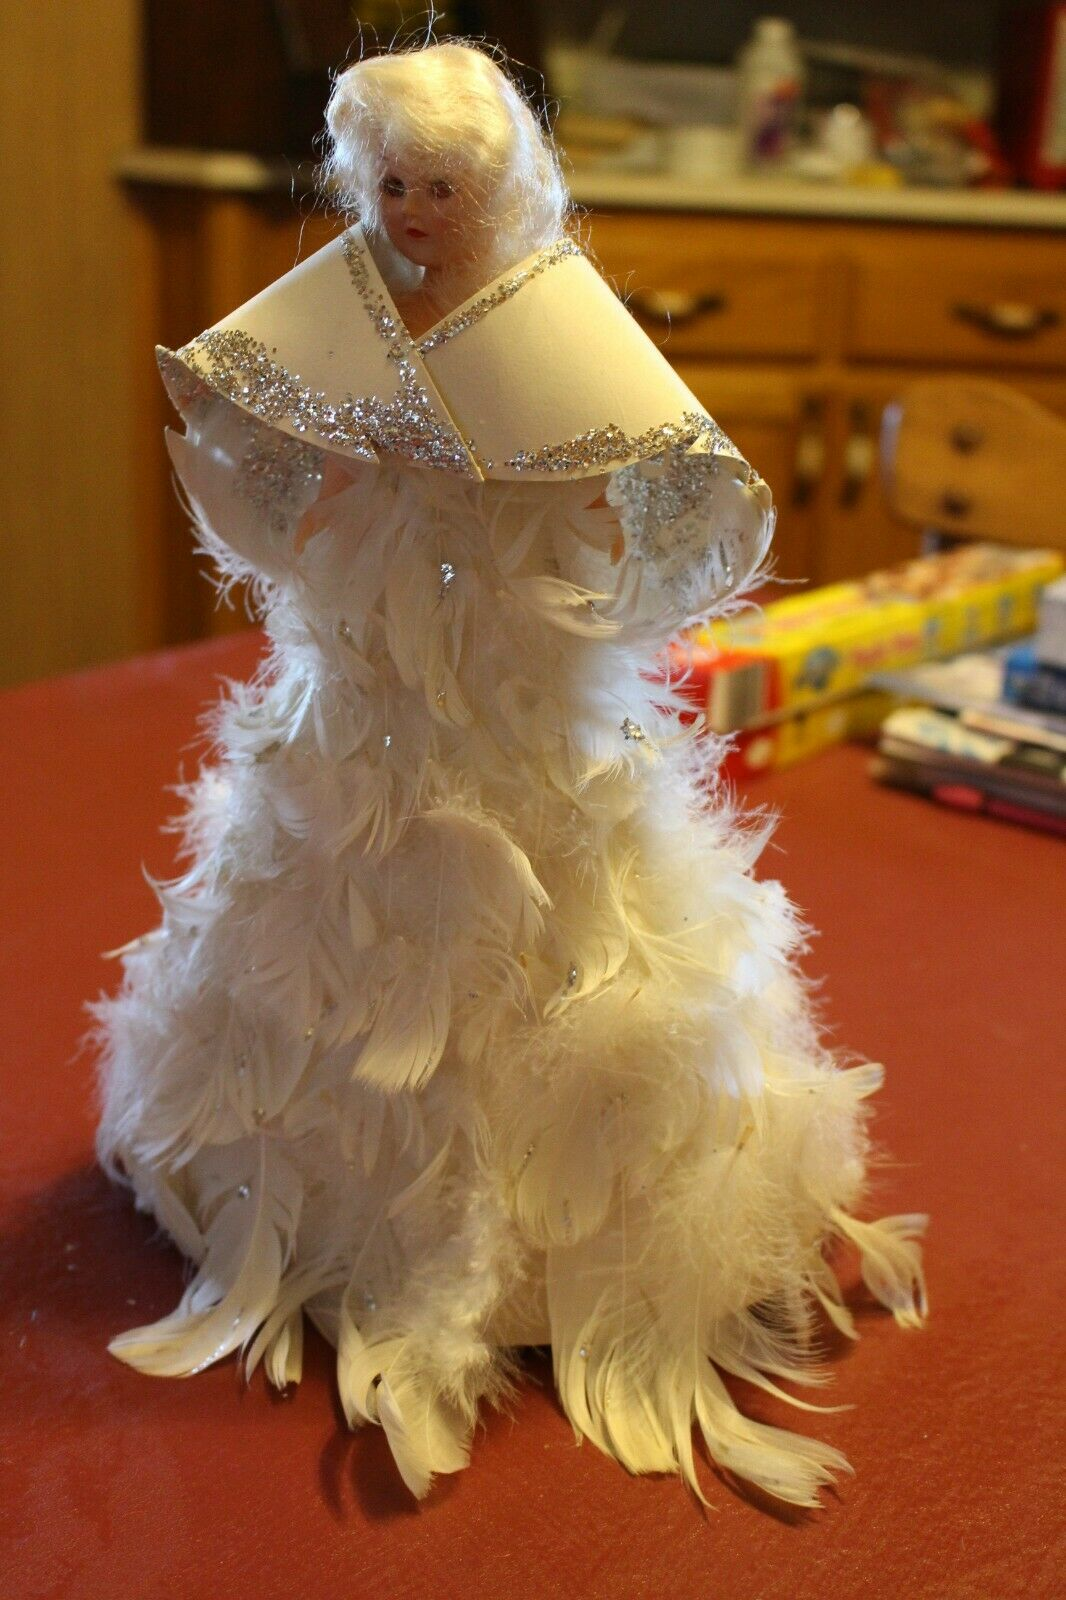 Vintage Angel Tree Topper - $5.00